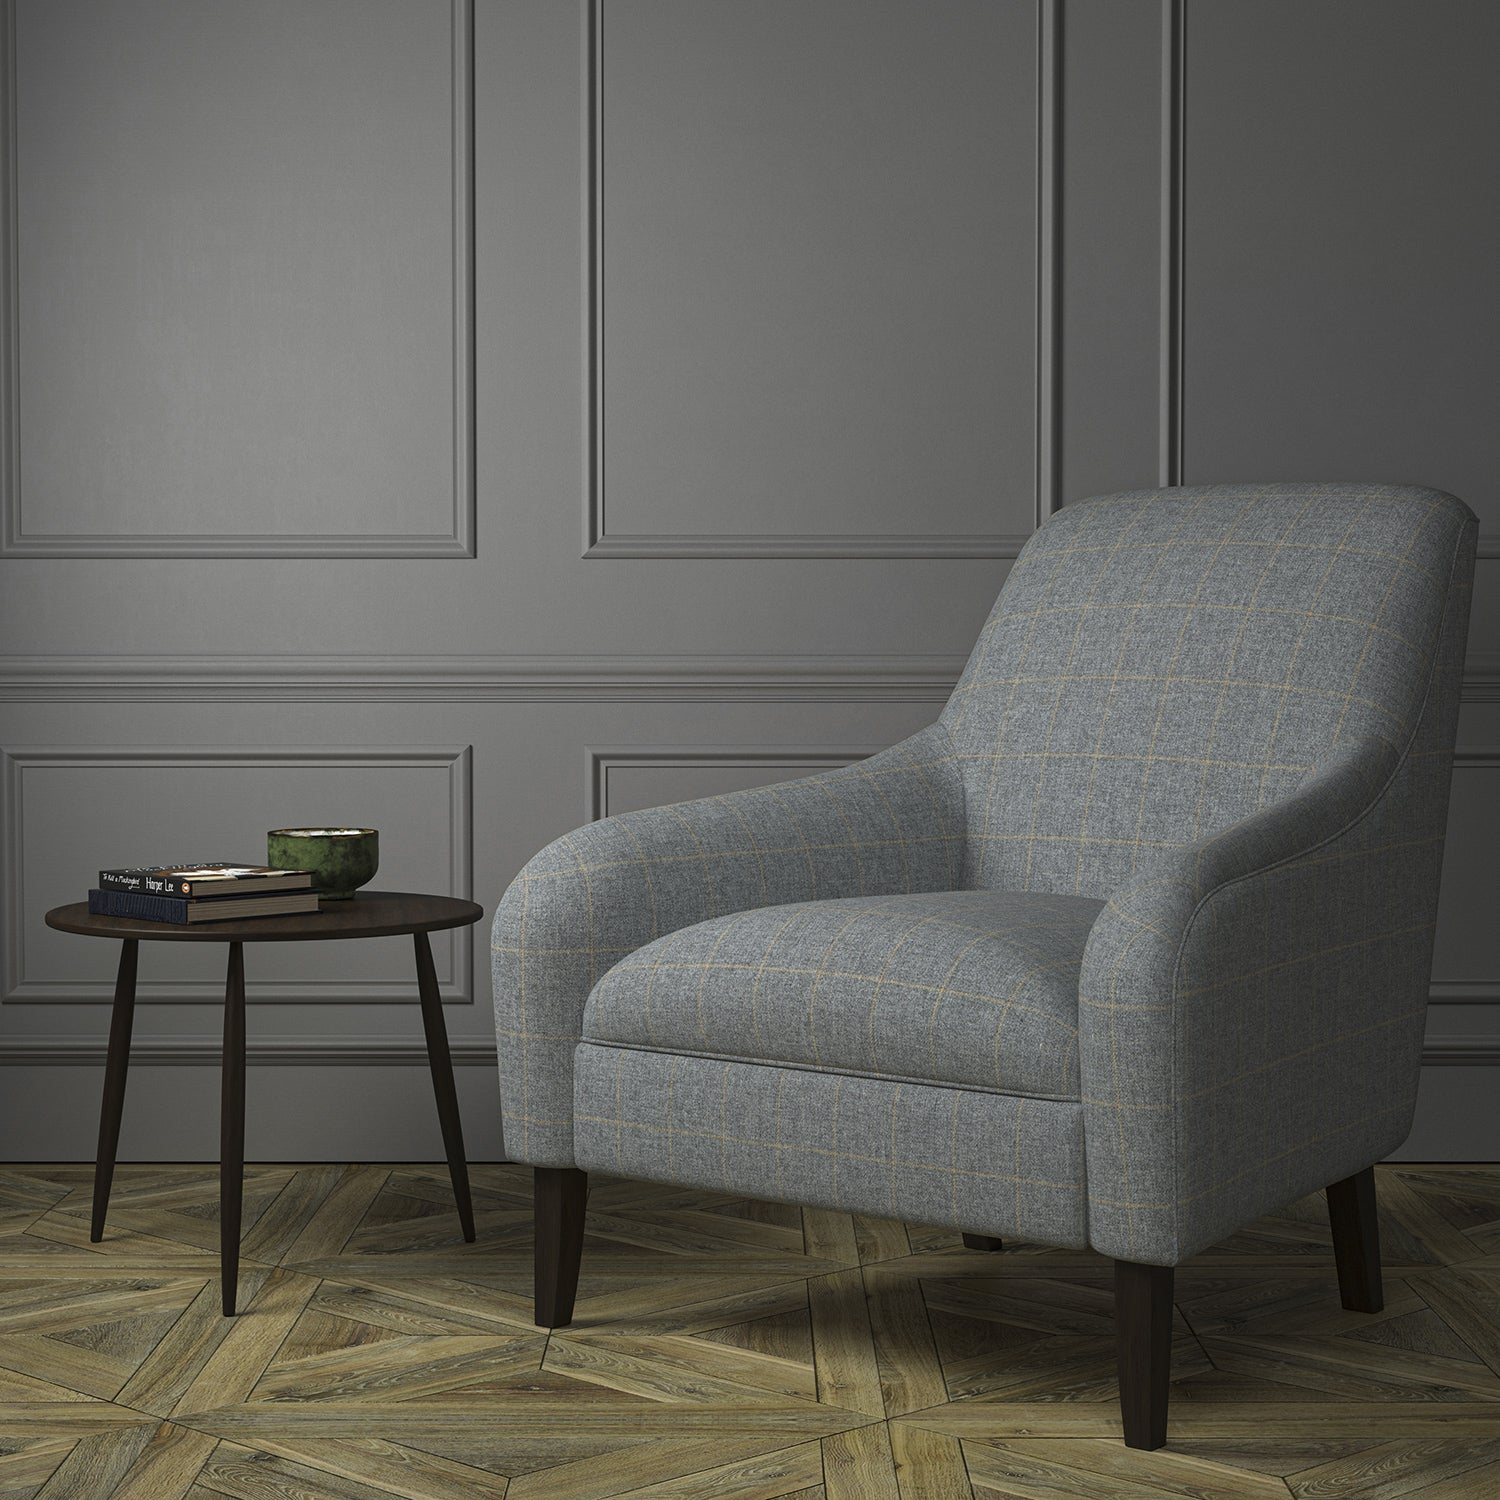 Chair upholstered in a grey Scottish wool windowpane check fabric